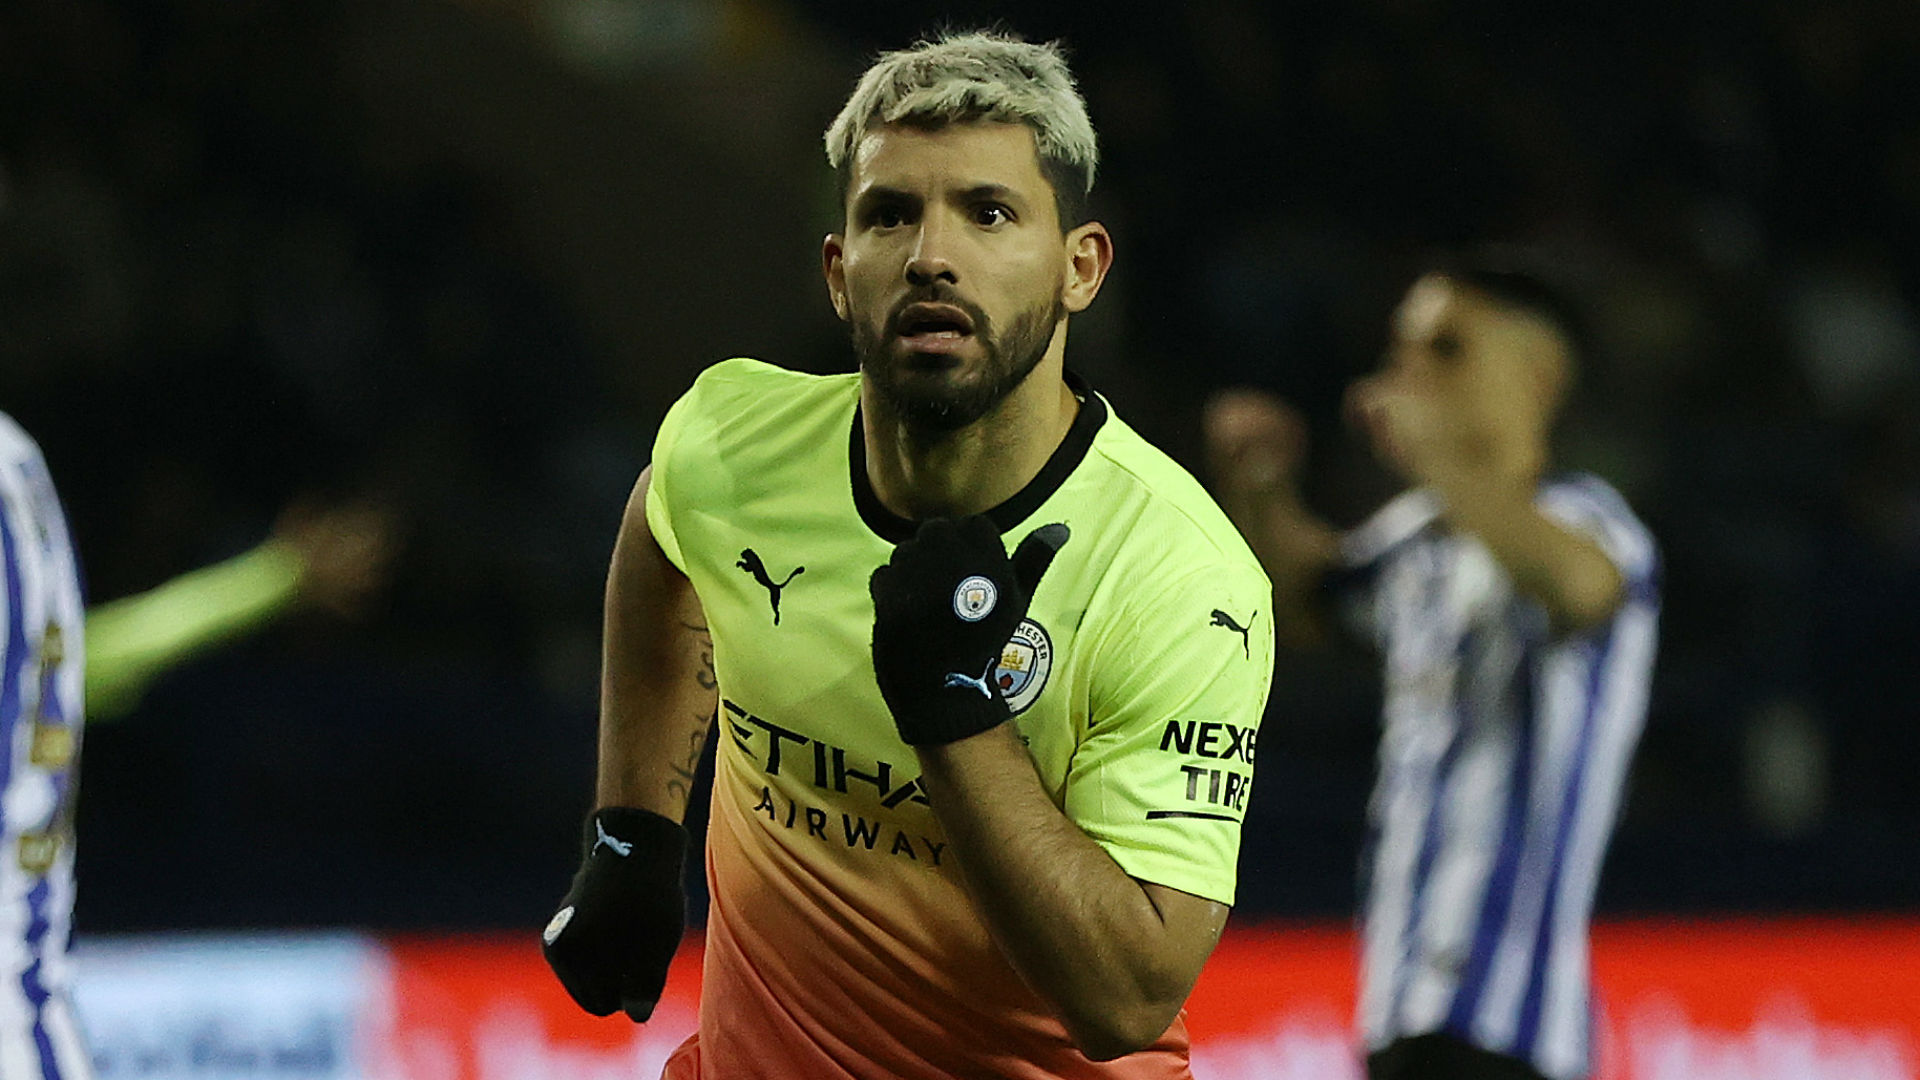 Sheffield Wednesday 0-1 Manchester City: Aguero sends FA Cup holders into quarter-finals